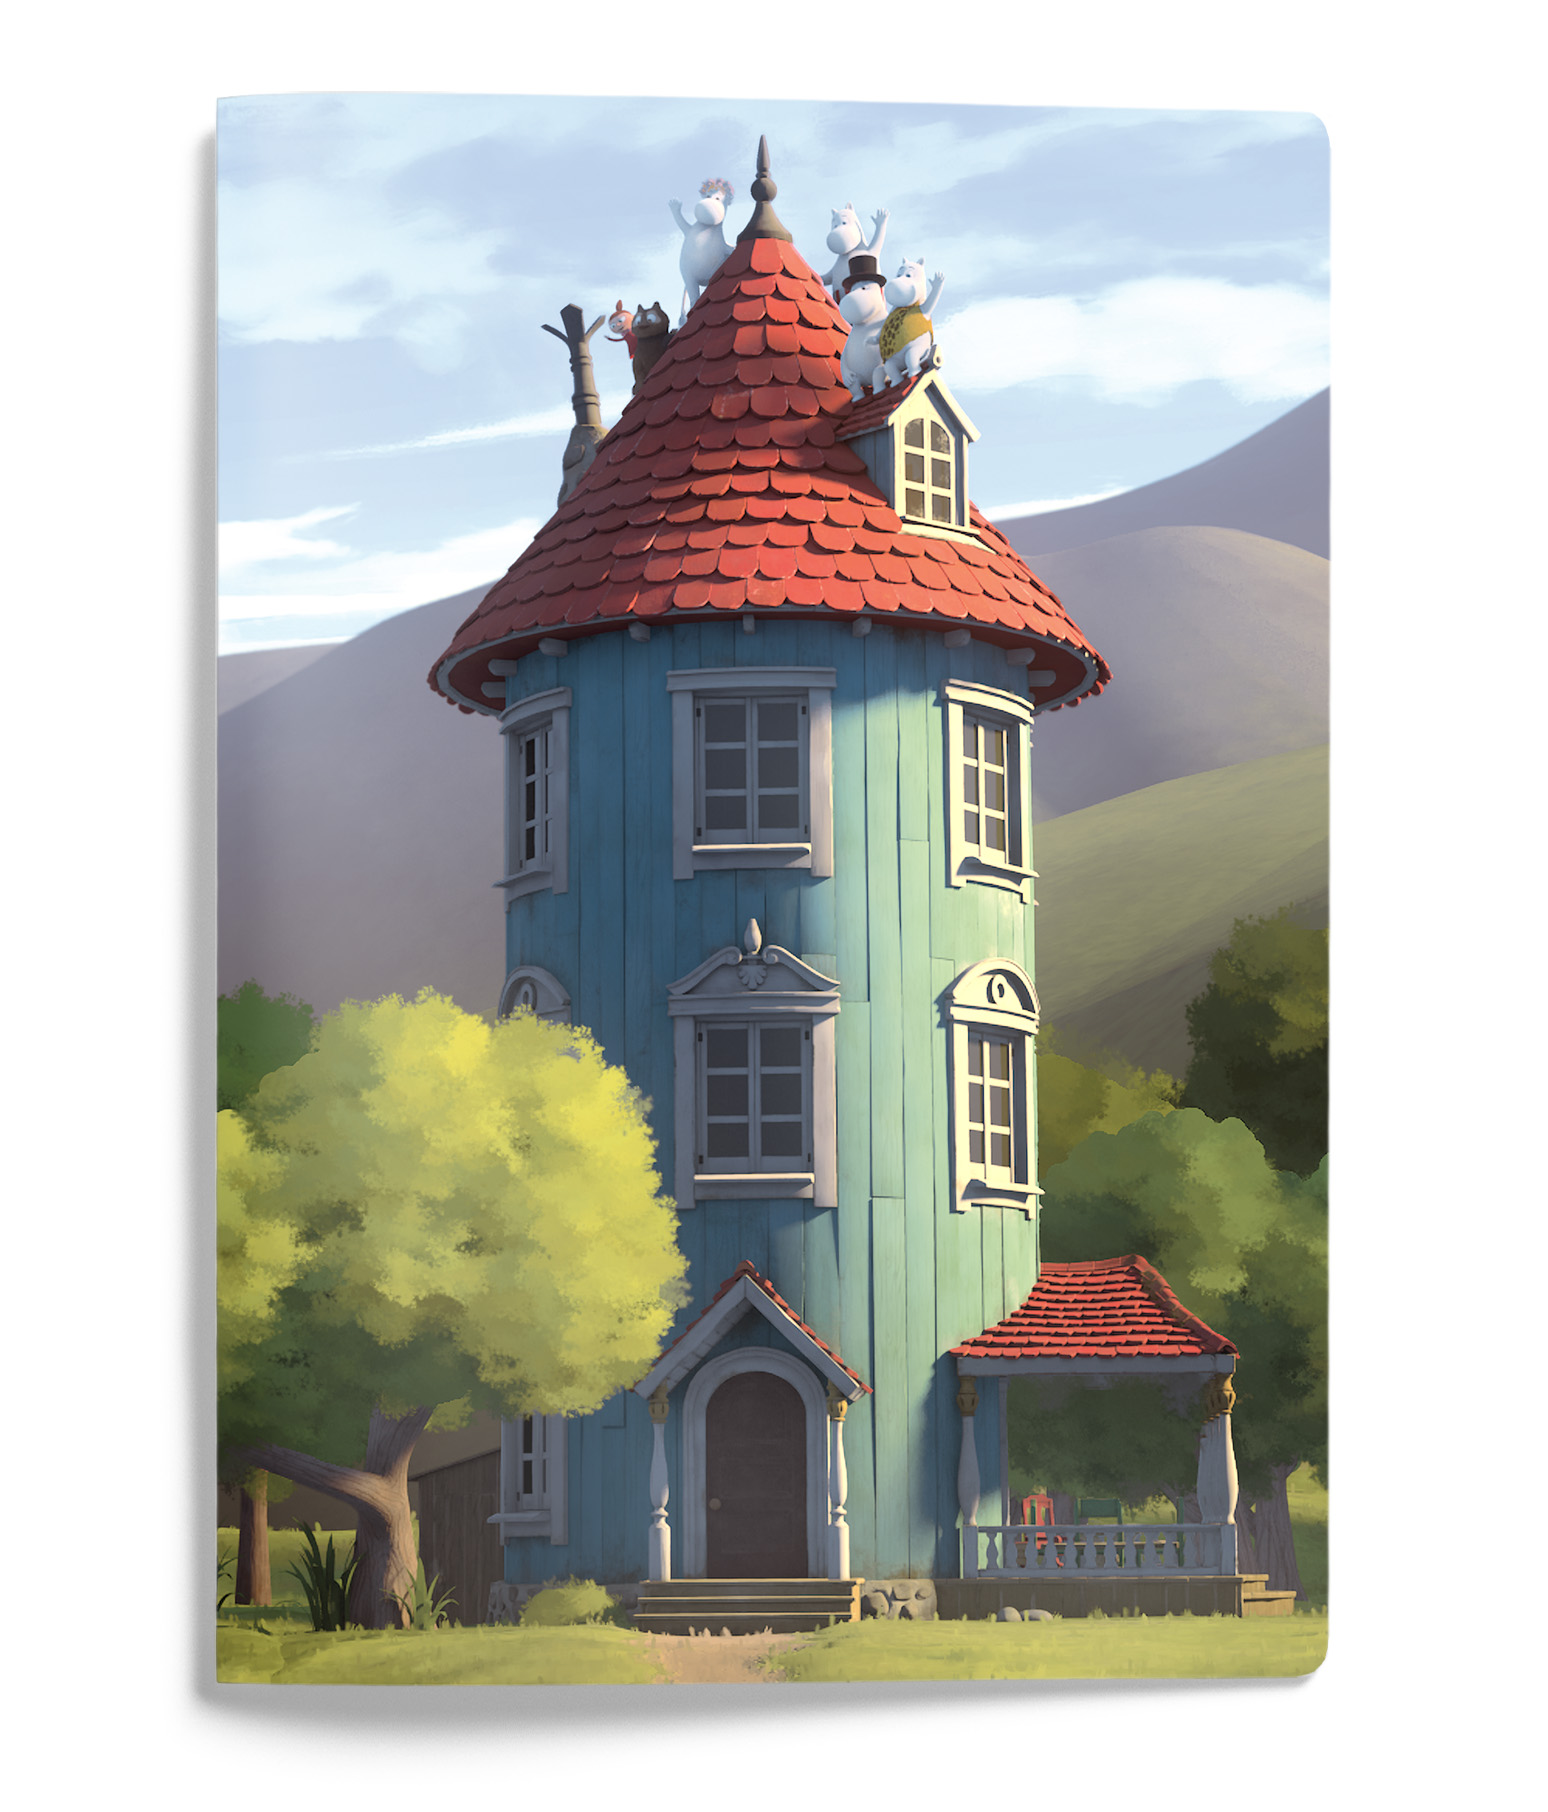 Putinki Softcover Notebook A5 Moominhouse